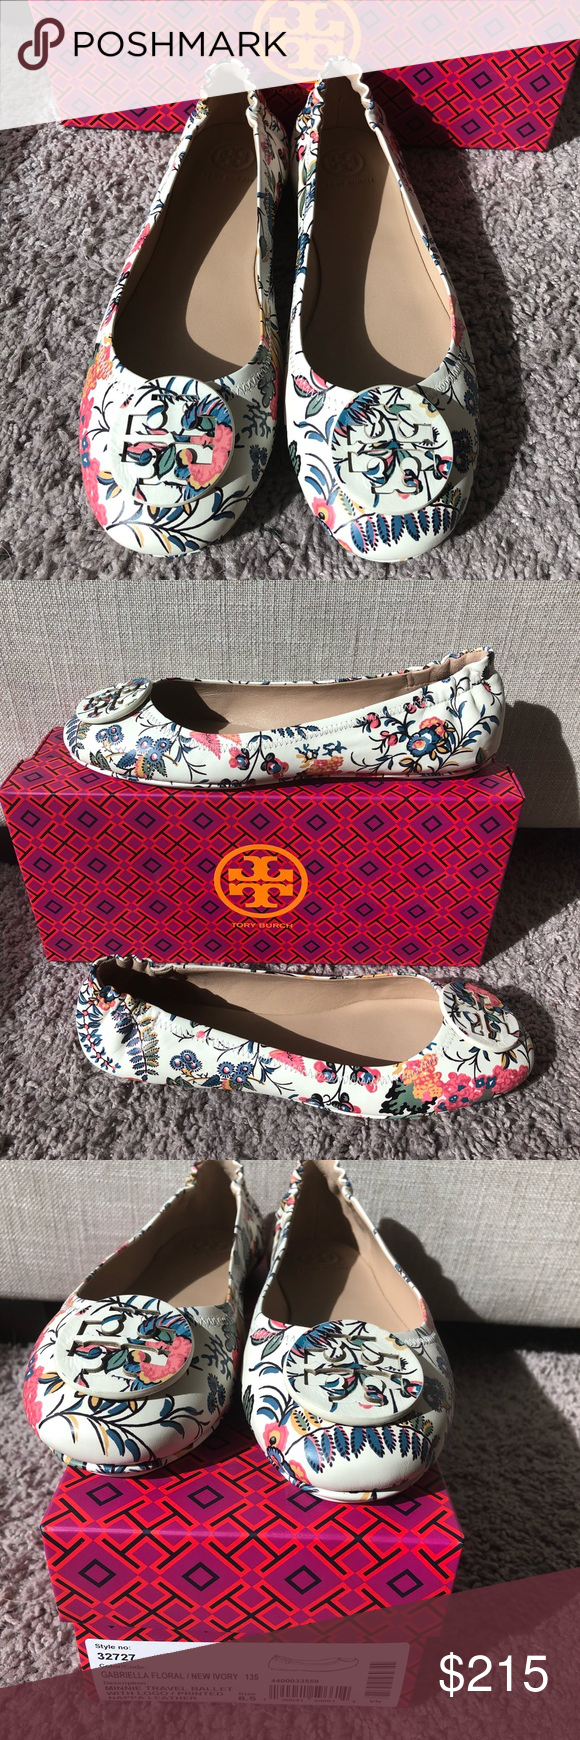 adb2ba8cad9 Tory Burch Minnie Travel Flats Gabriella Floral Tory Burch Minnie travel  ballet flats in sold out